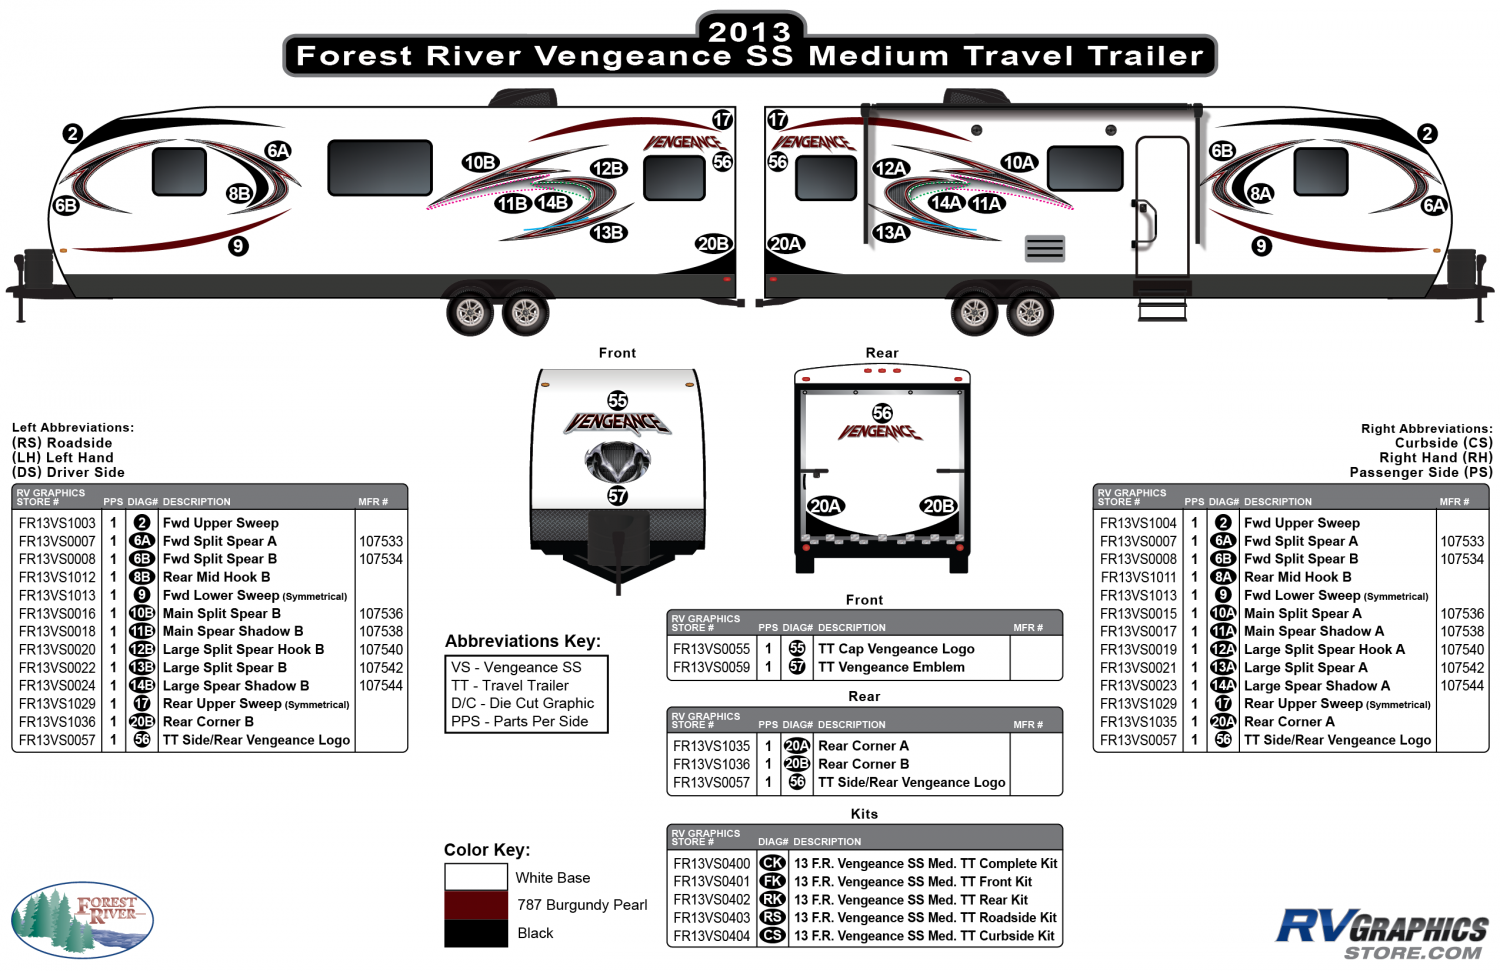 Vengeance - 2013 Vengeance Medium Travel Trailer